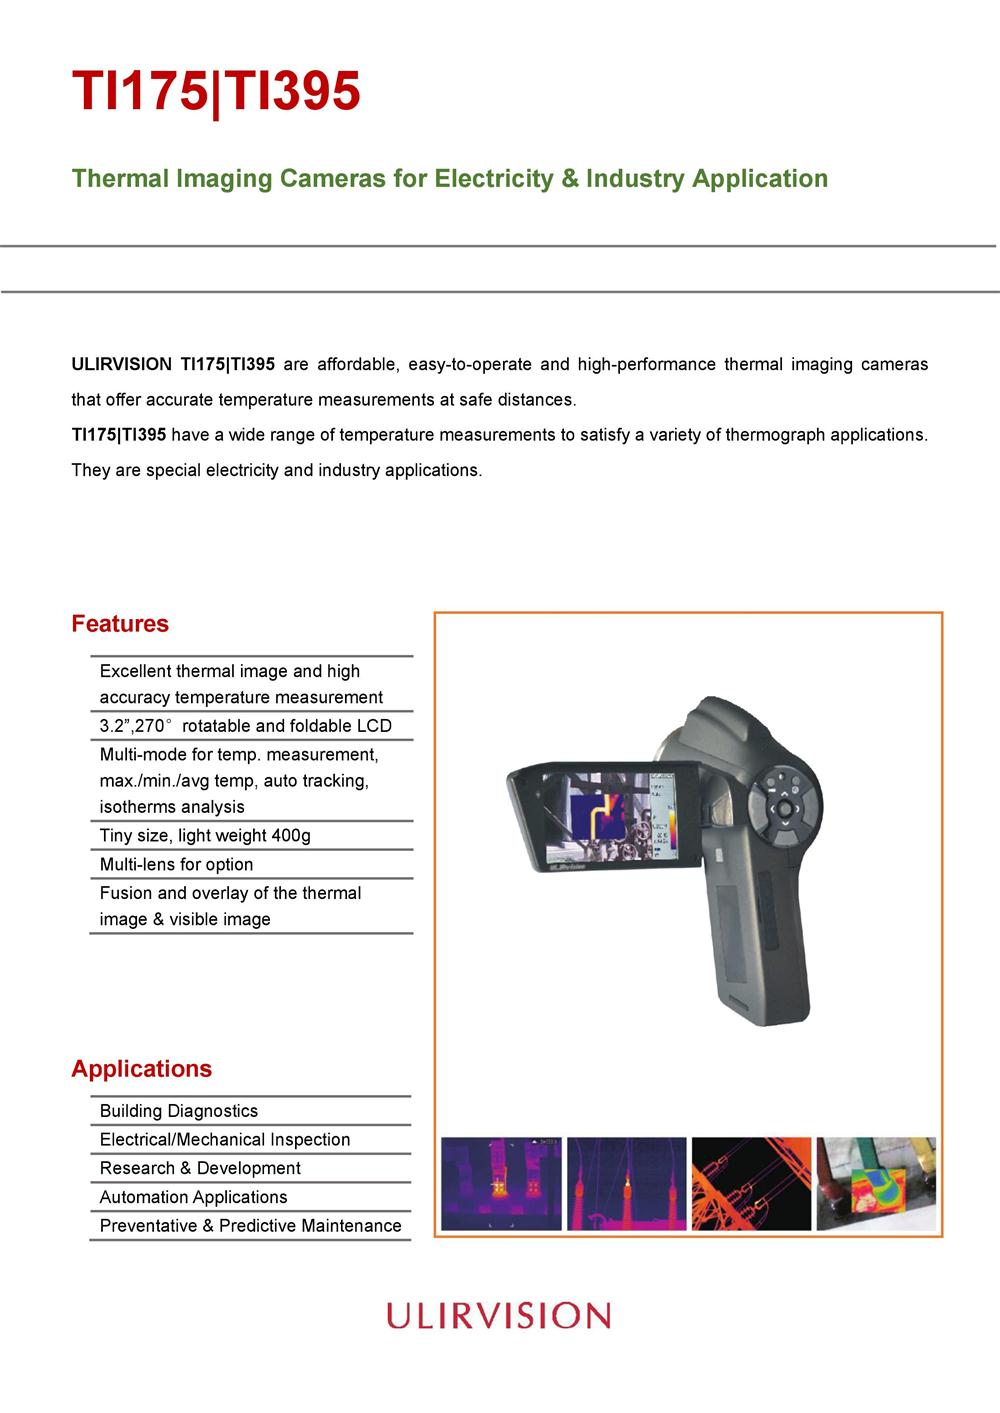 ULIRVISION Portable Thermal imaging camera for various industries TI395